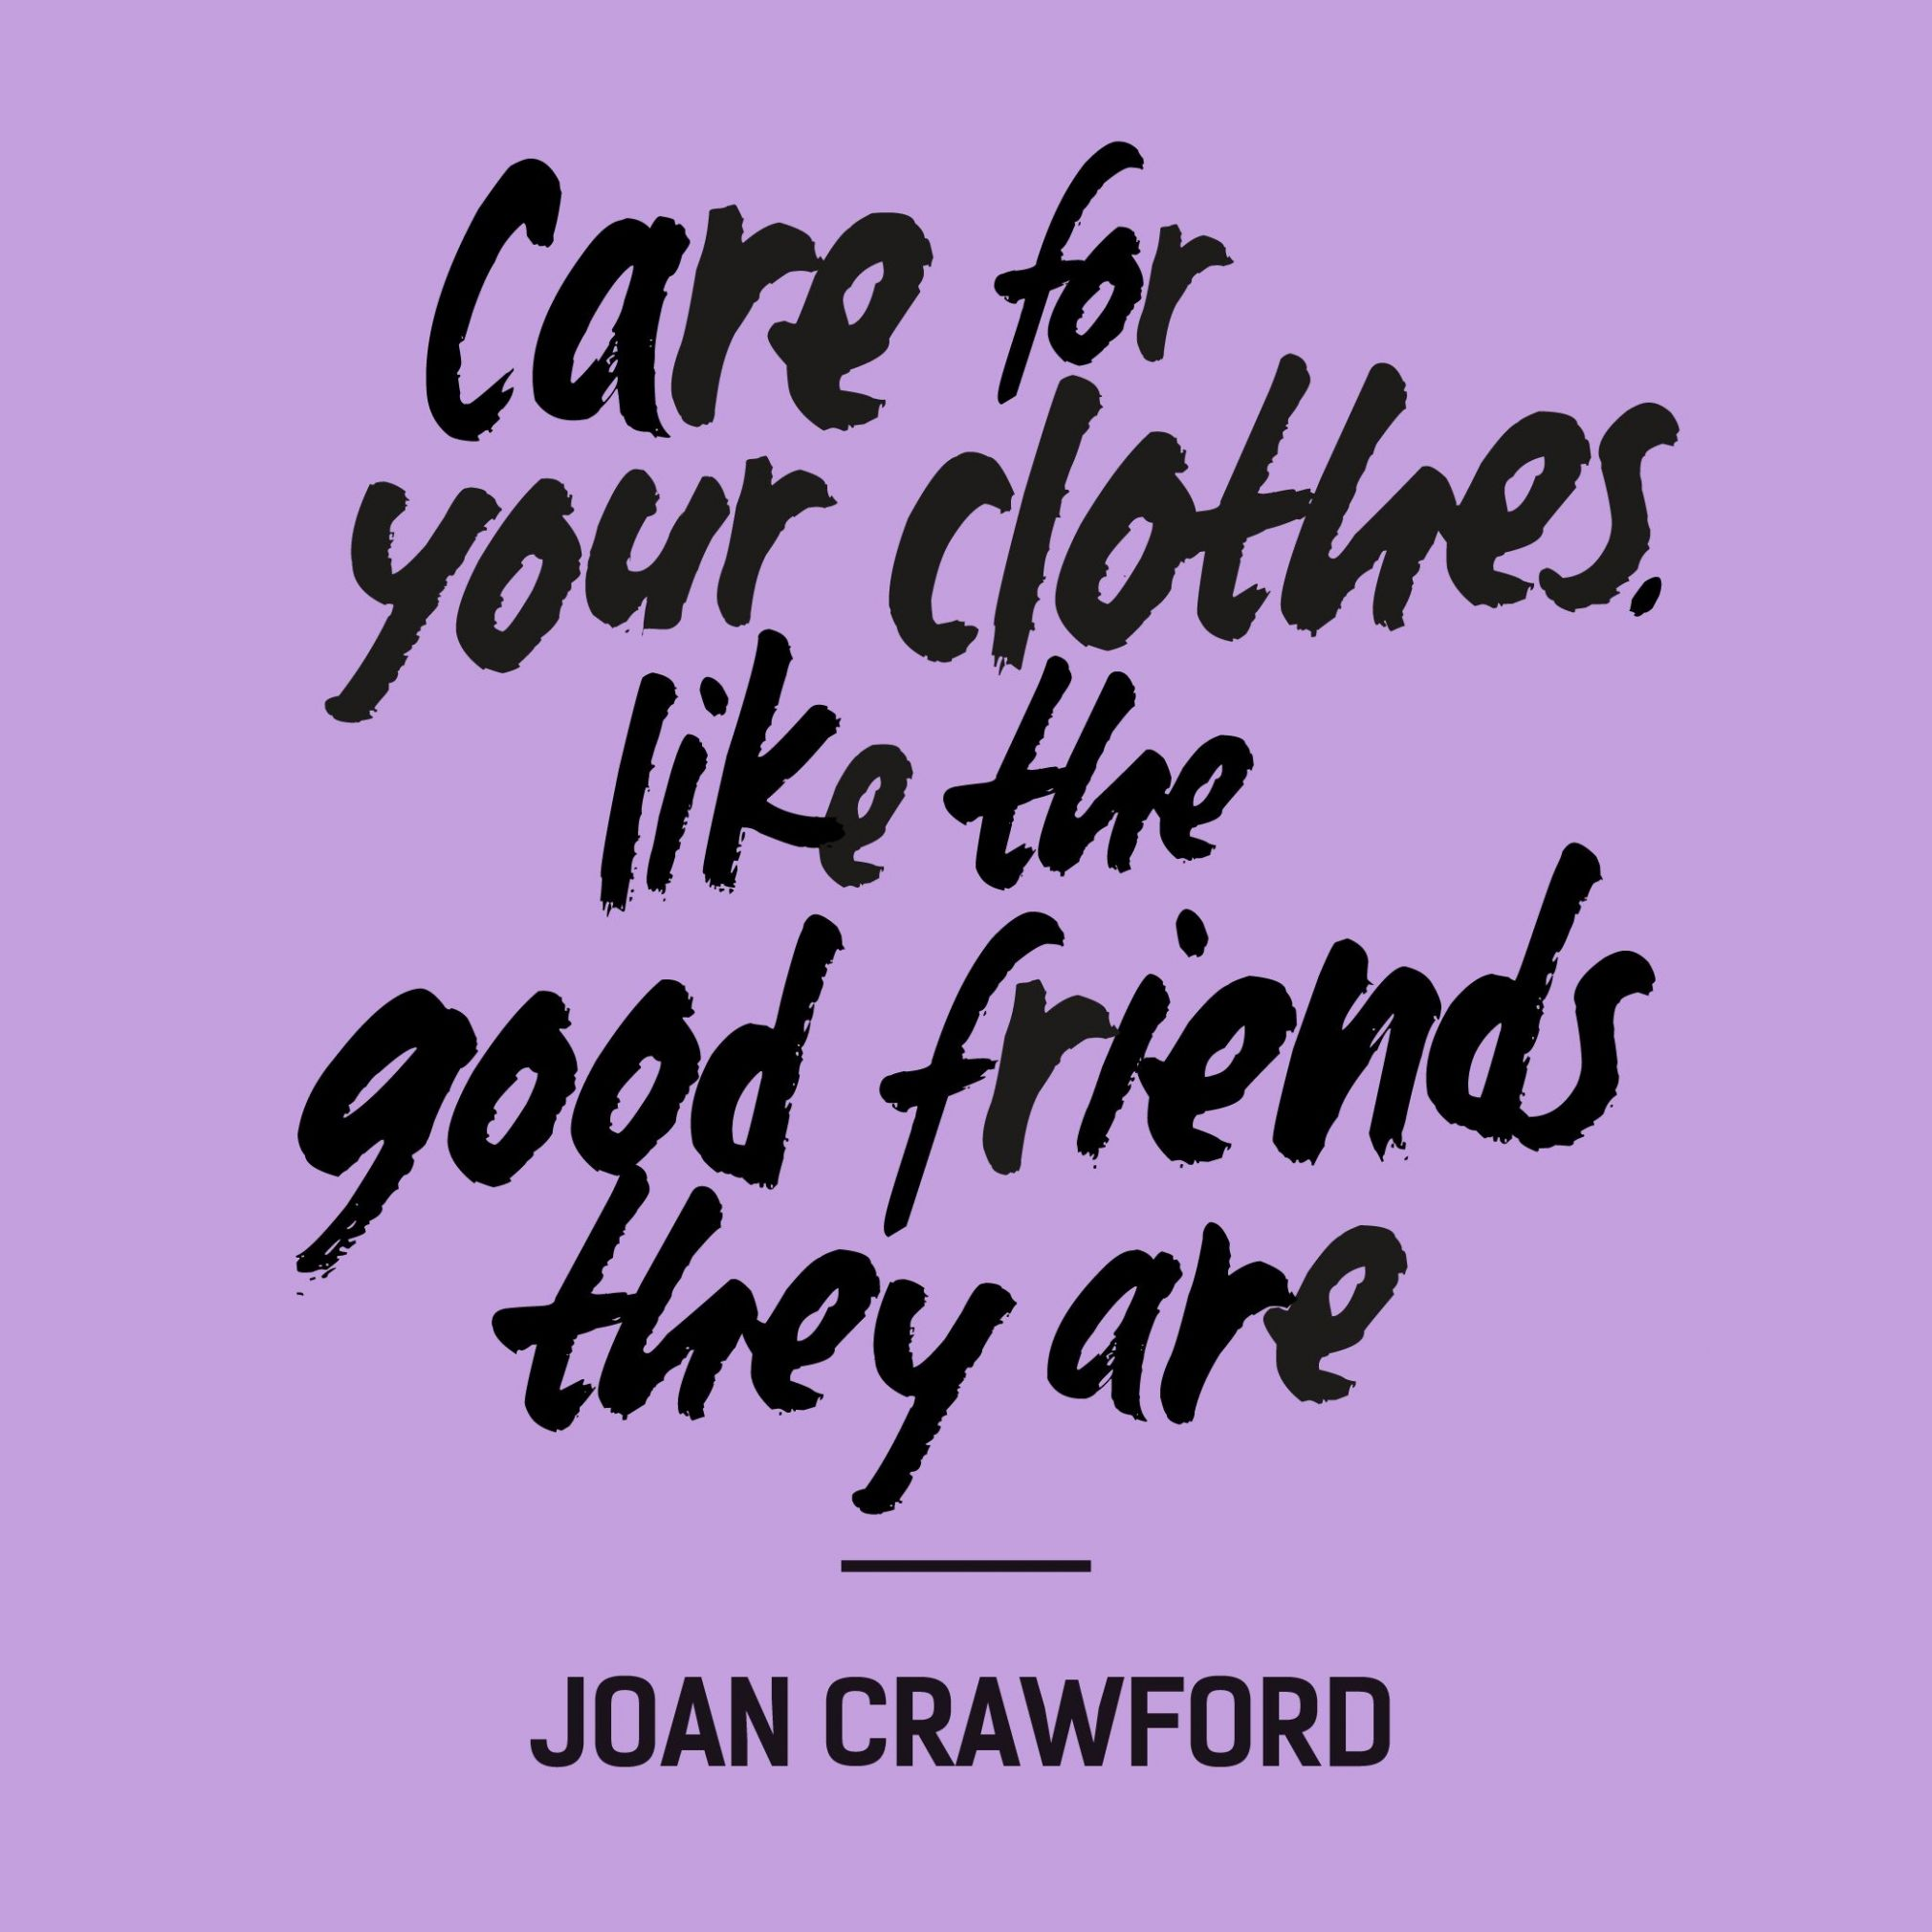 """Care for your clothes, like the good friends they are"""" —Joan .."""